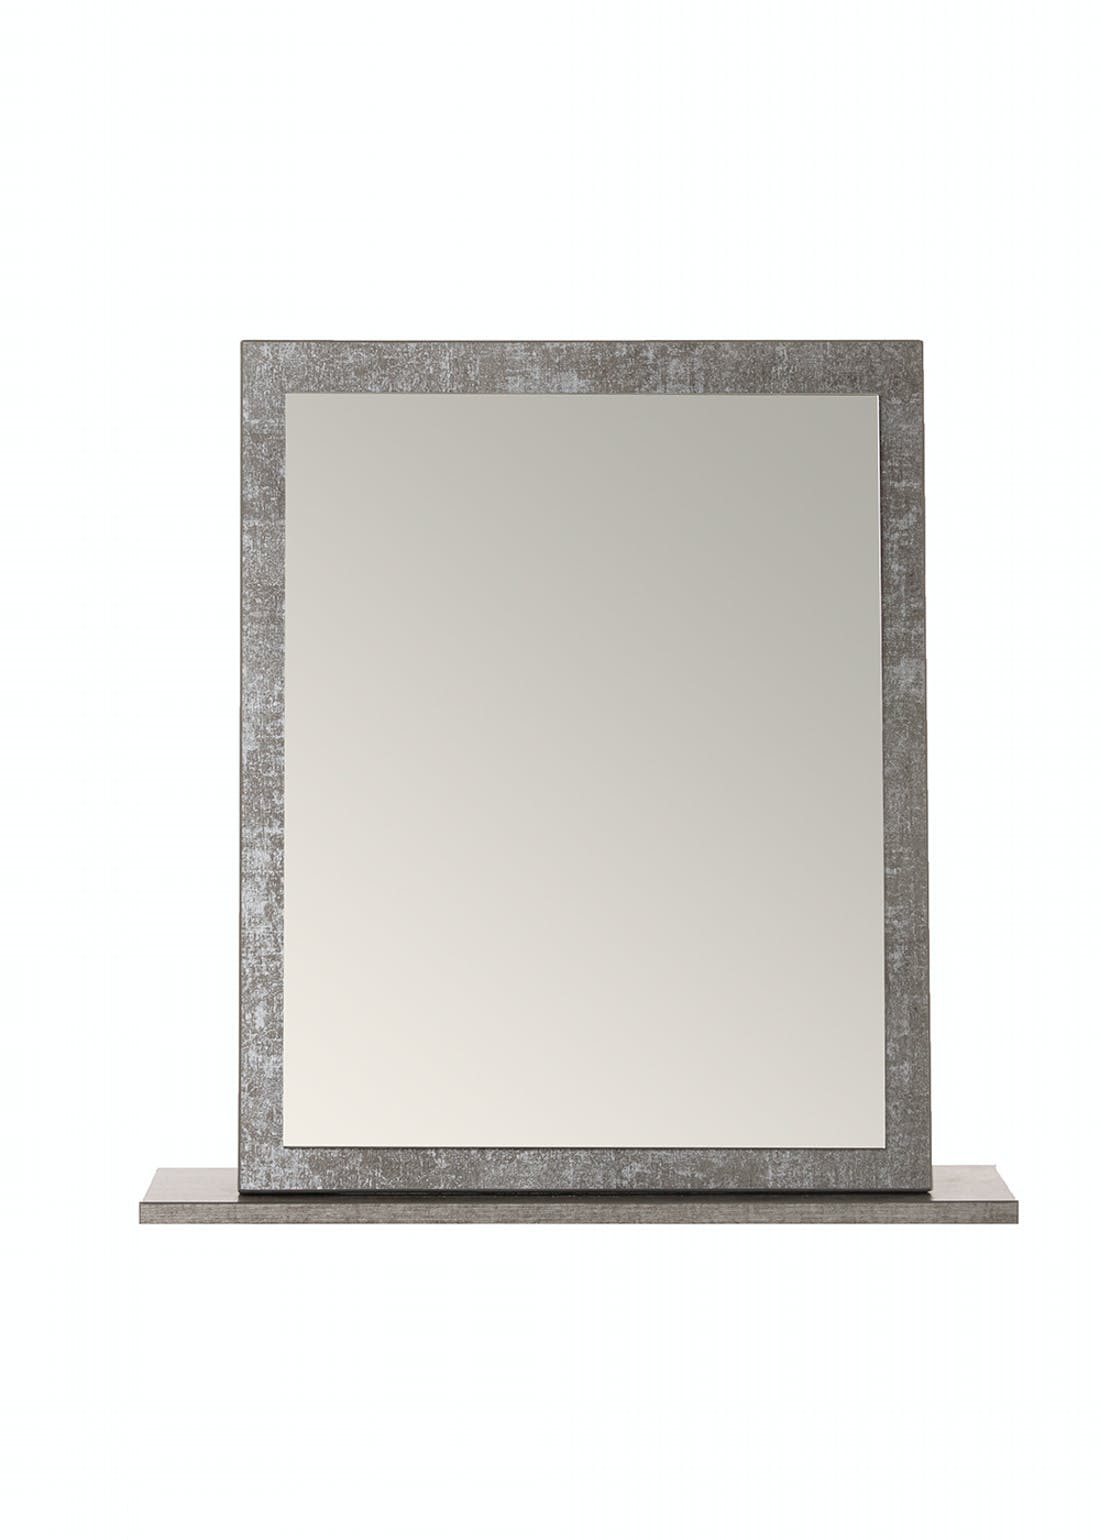 Swift Roma Mirror (50.5cm x 48cm x 14cm)